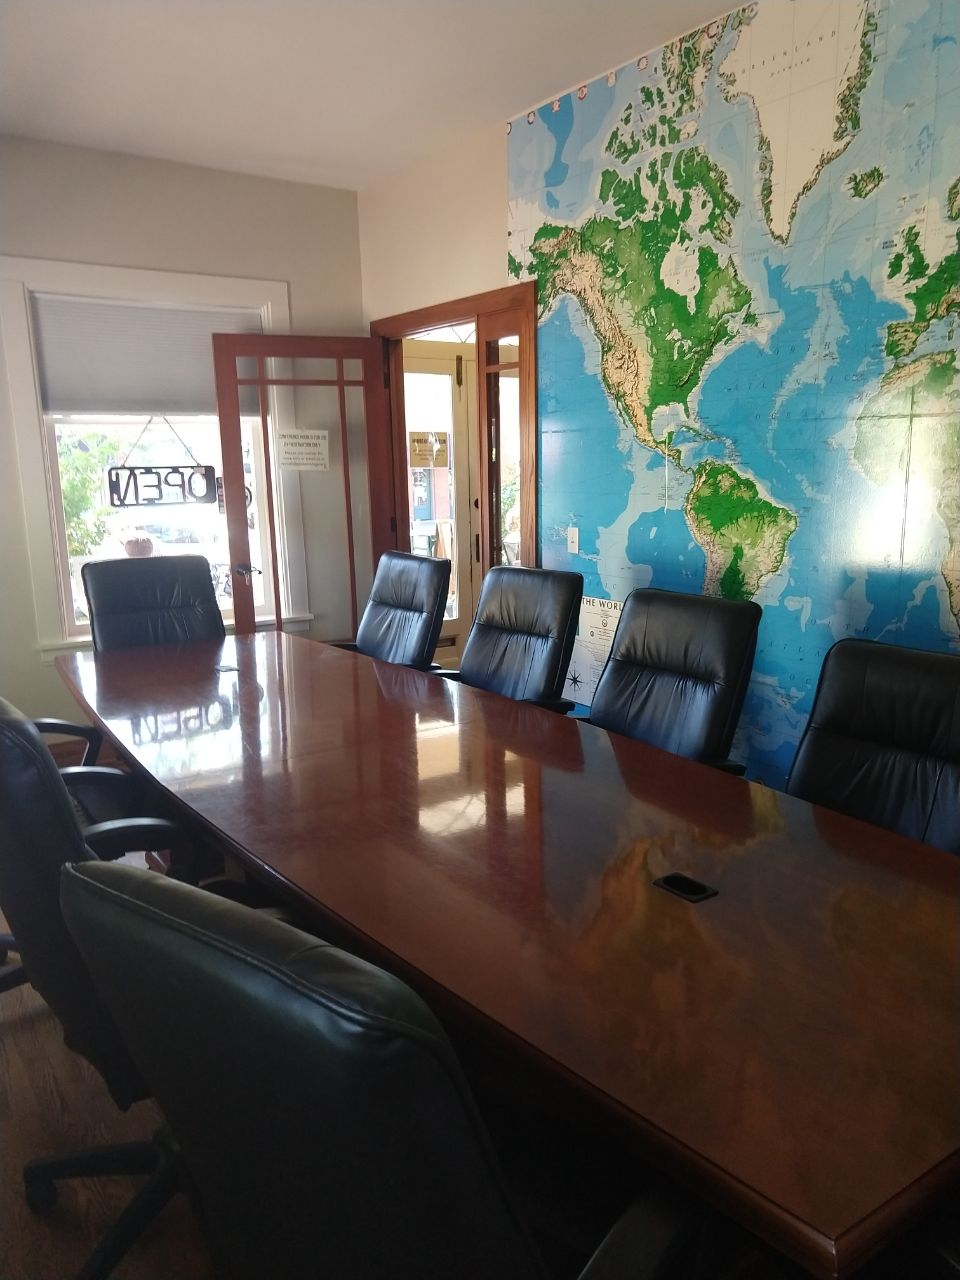 The Conference Room at Global Goods & Coffee